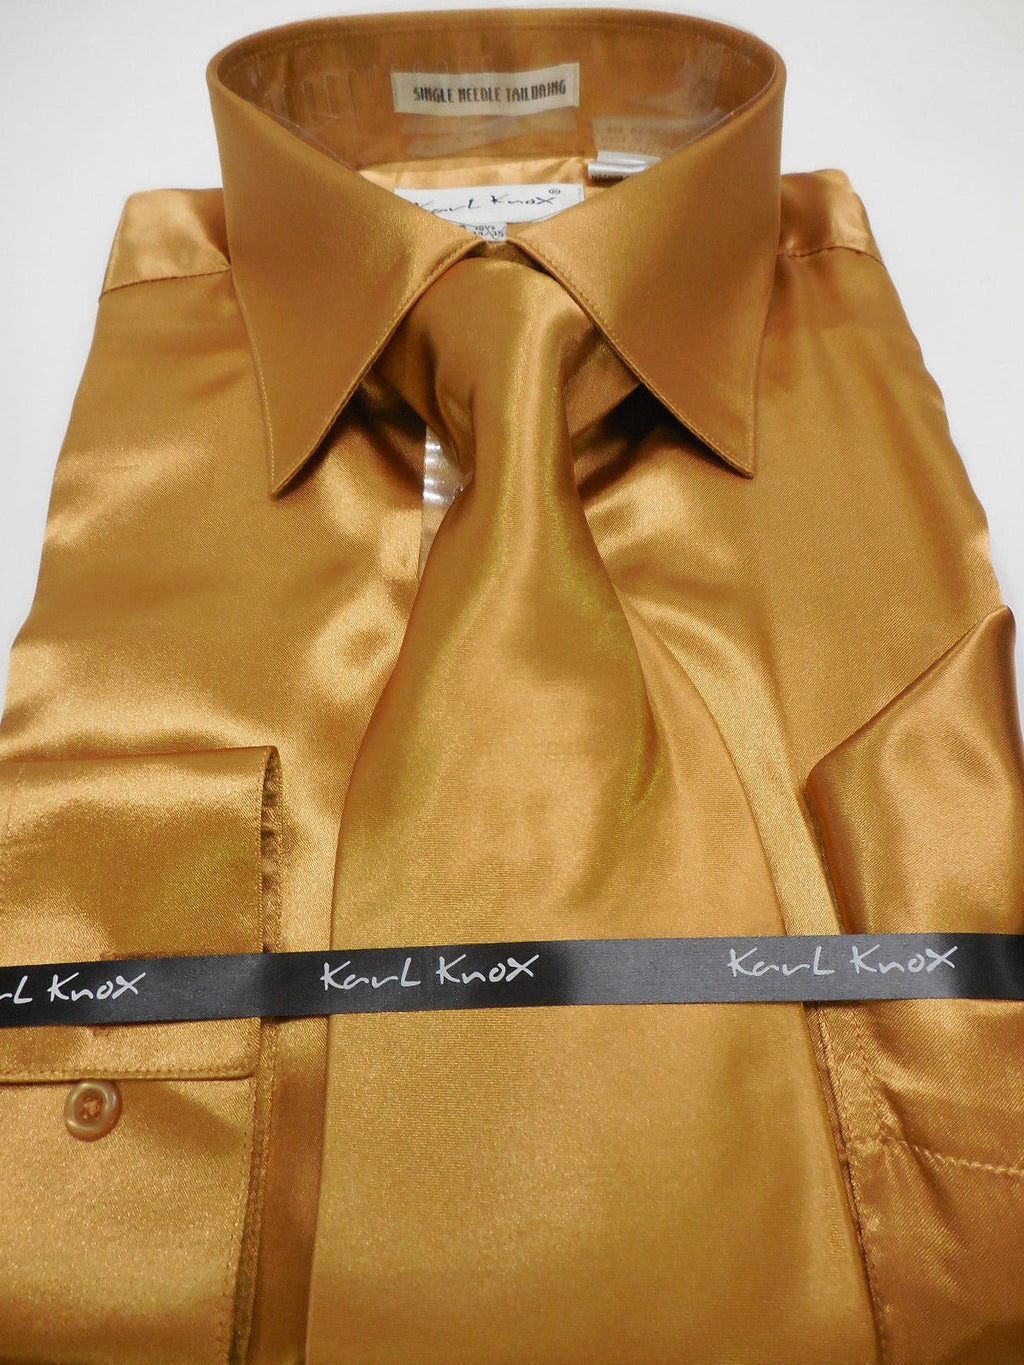 Mens Karl Knox Shiny Copper Golden Brown Silky Satin Formal Dress Shirt & Tie - Nader Fashion Las Vegas